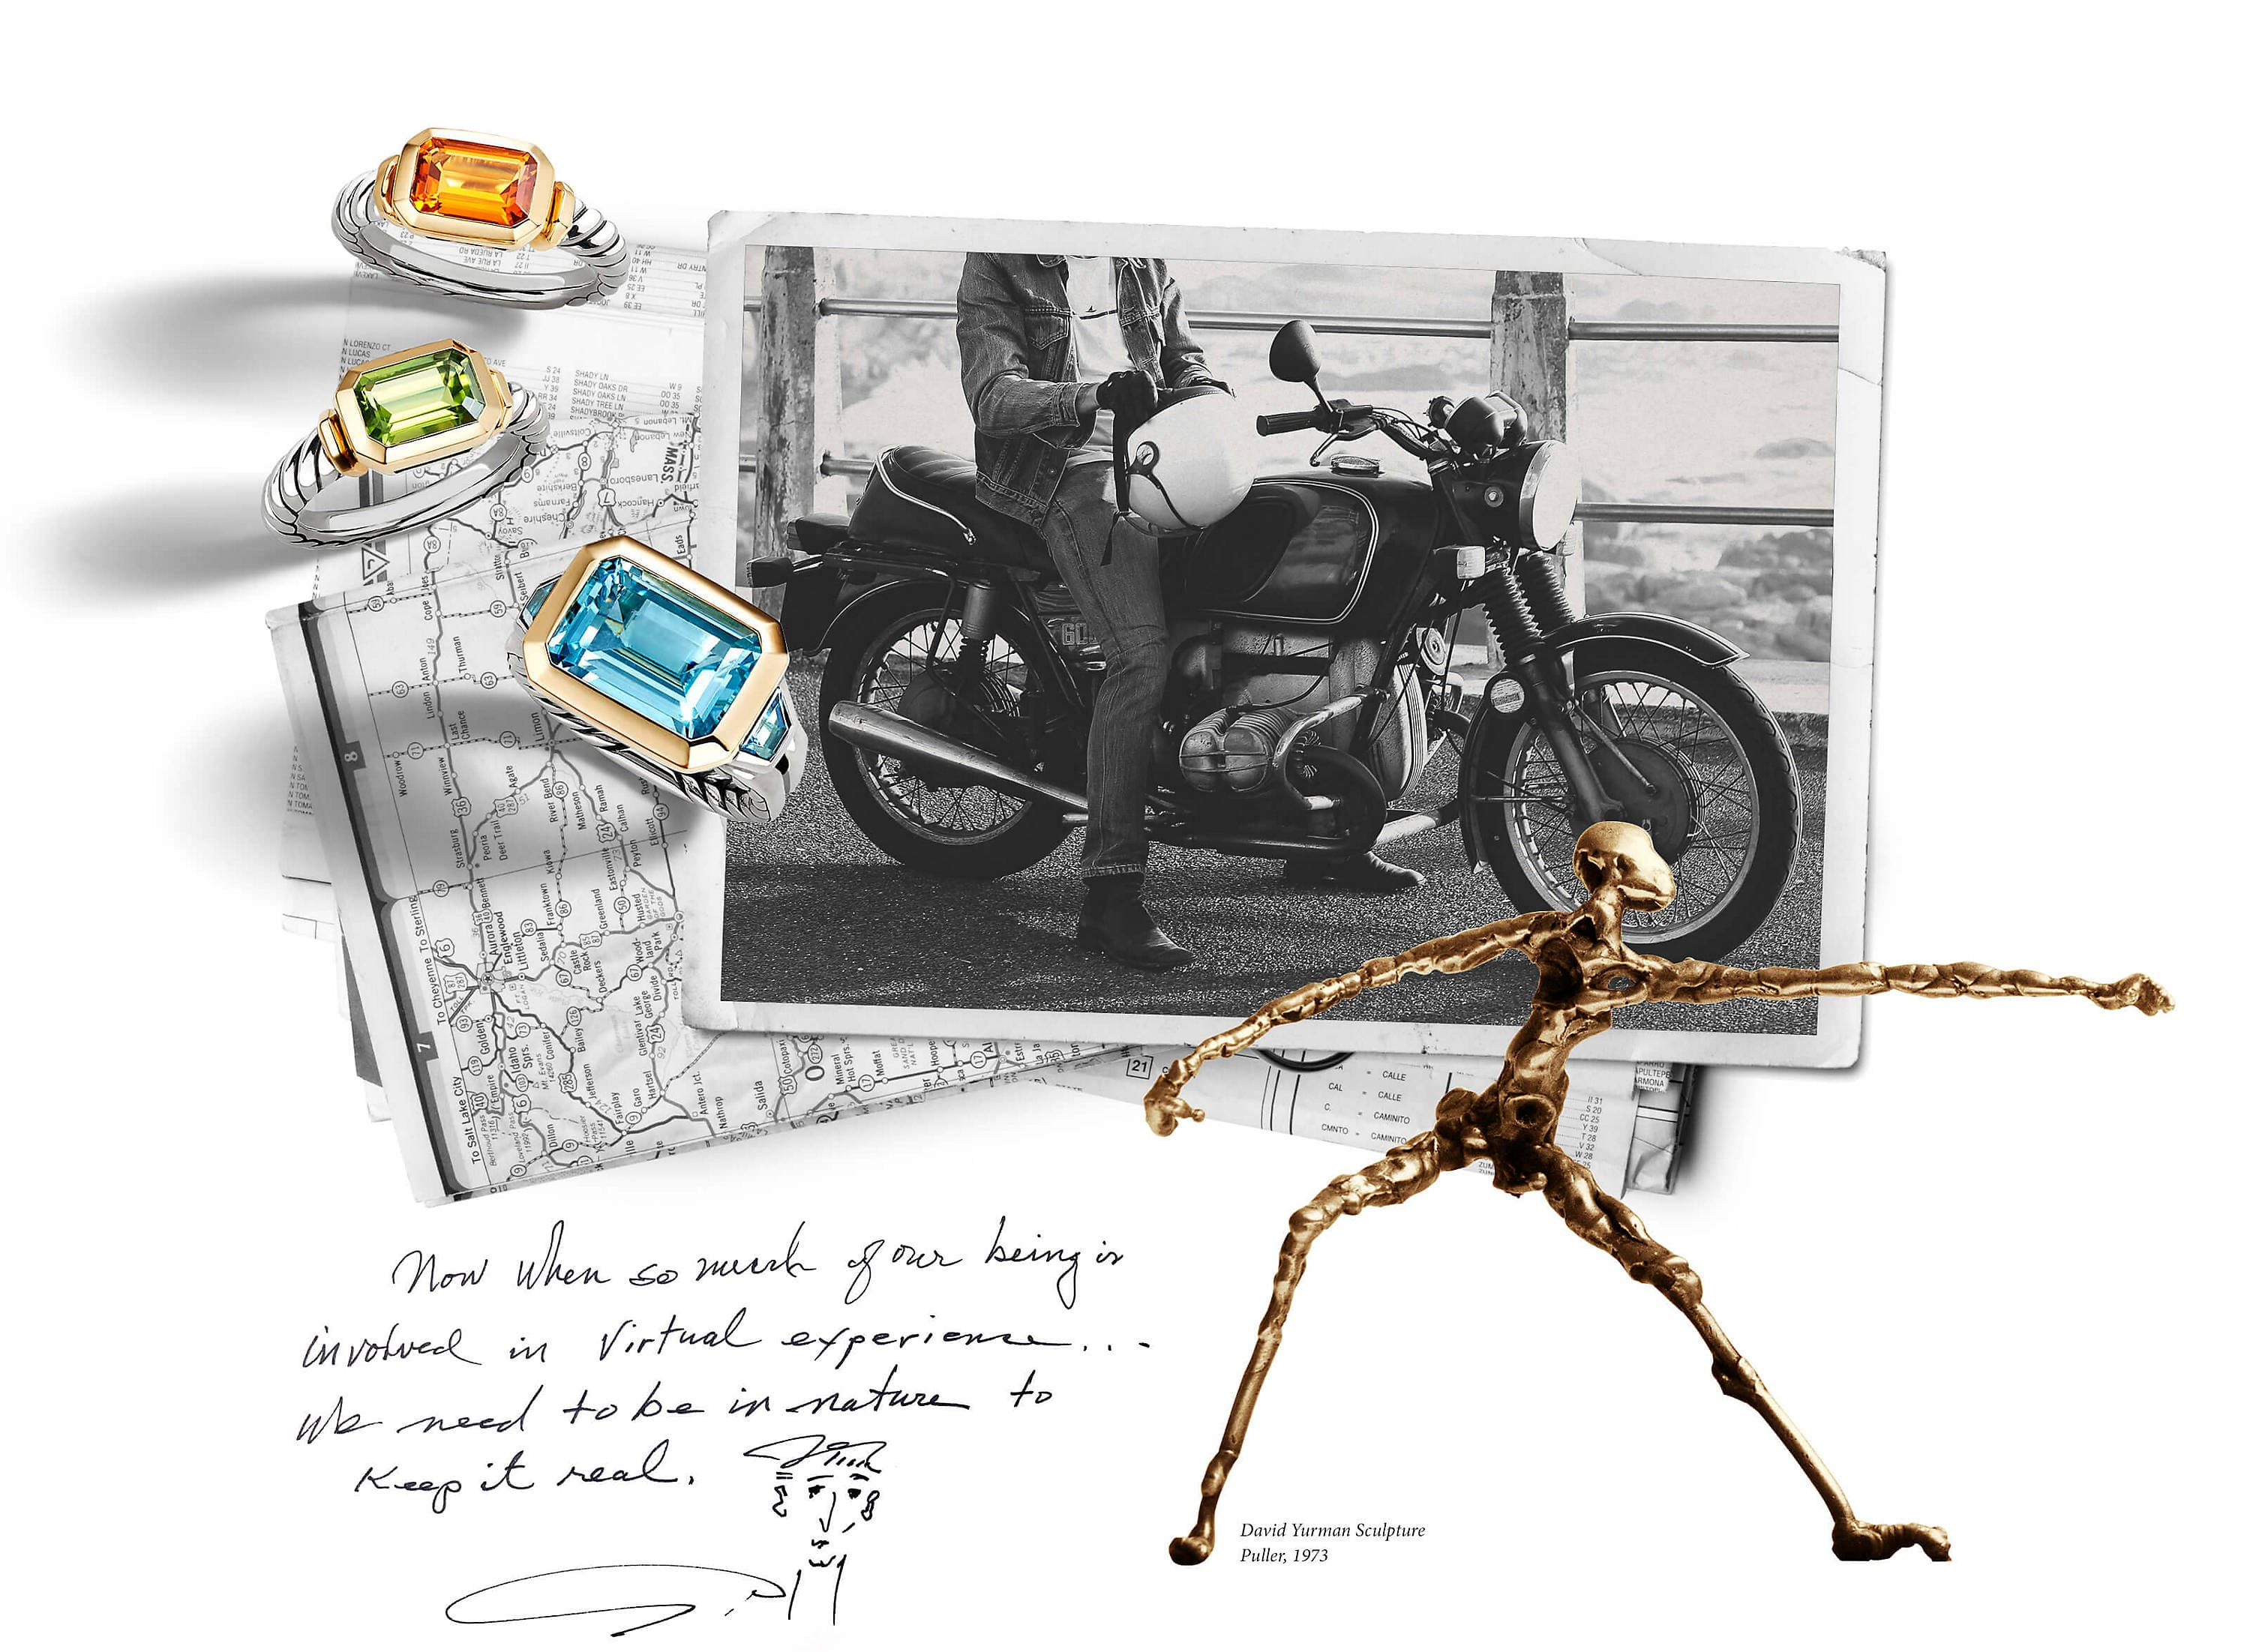 "A color photo shows a collage of pictures and jewelry. At the center is a black-and-white self-developed picture depicting a man sitting on a motorcycle as it is parked on pavement next to a wood-and-metal railing overlooking part of the Pacific coastline. Behind and to the left of this picture are folded, black-and-white maps showing different areas in the western United States. Standing upright on and casting long shadows over these folded maps and self-developed picture is a horizontal stack of three David Yurman Novella rings crafted from sterling silver with 18K yellow gold. From top the rings feature center stones of citrine, green tourmaline and blue topaz. Below the maps are the words ""Now when so much of our being is involved in virtual experience…we need to be in nature to keep it real."" and a sketch of a man's face in black ink. To the right of these words is a photo of a bronze humanoid sculpture in a measured stance with one arm outstretched, facing right. The sculpture photo is shown overlaid over the self-developed picture and map collage, and features a caption that reads ""David Yurman Sculpture Puller, 1973"" to the right of the sculpture's left foot."